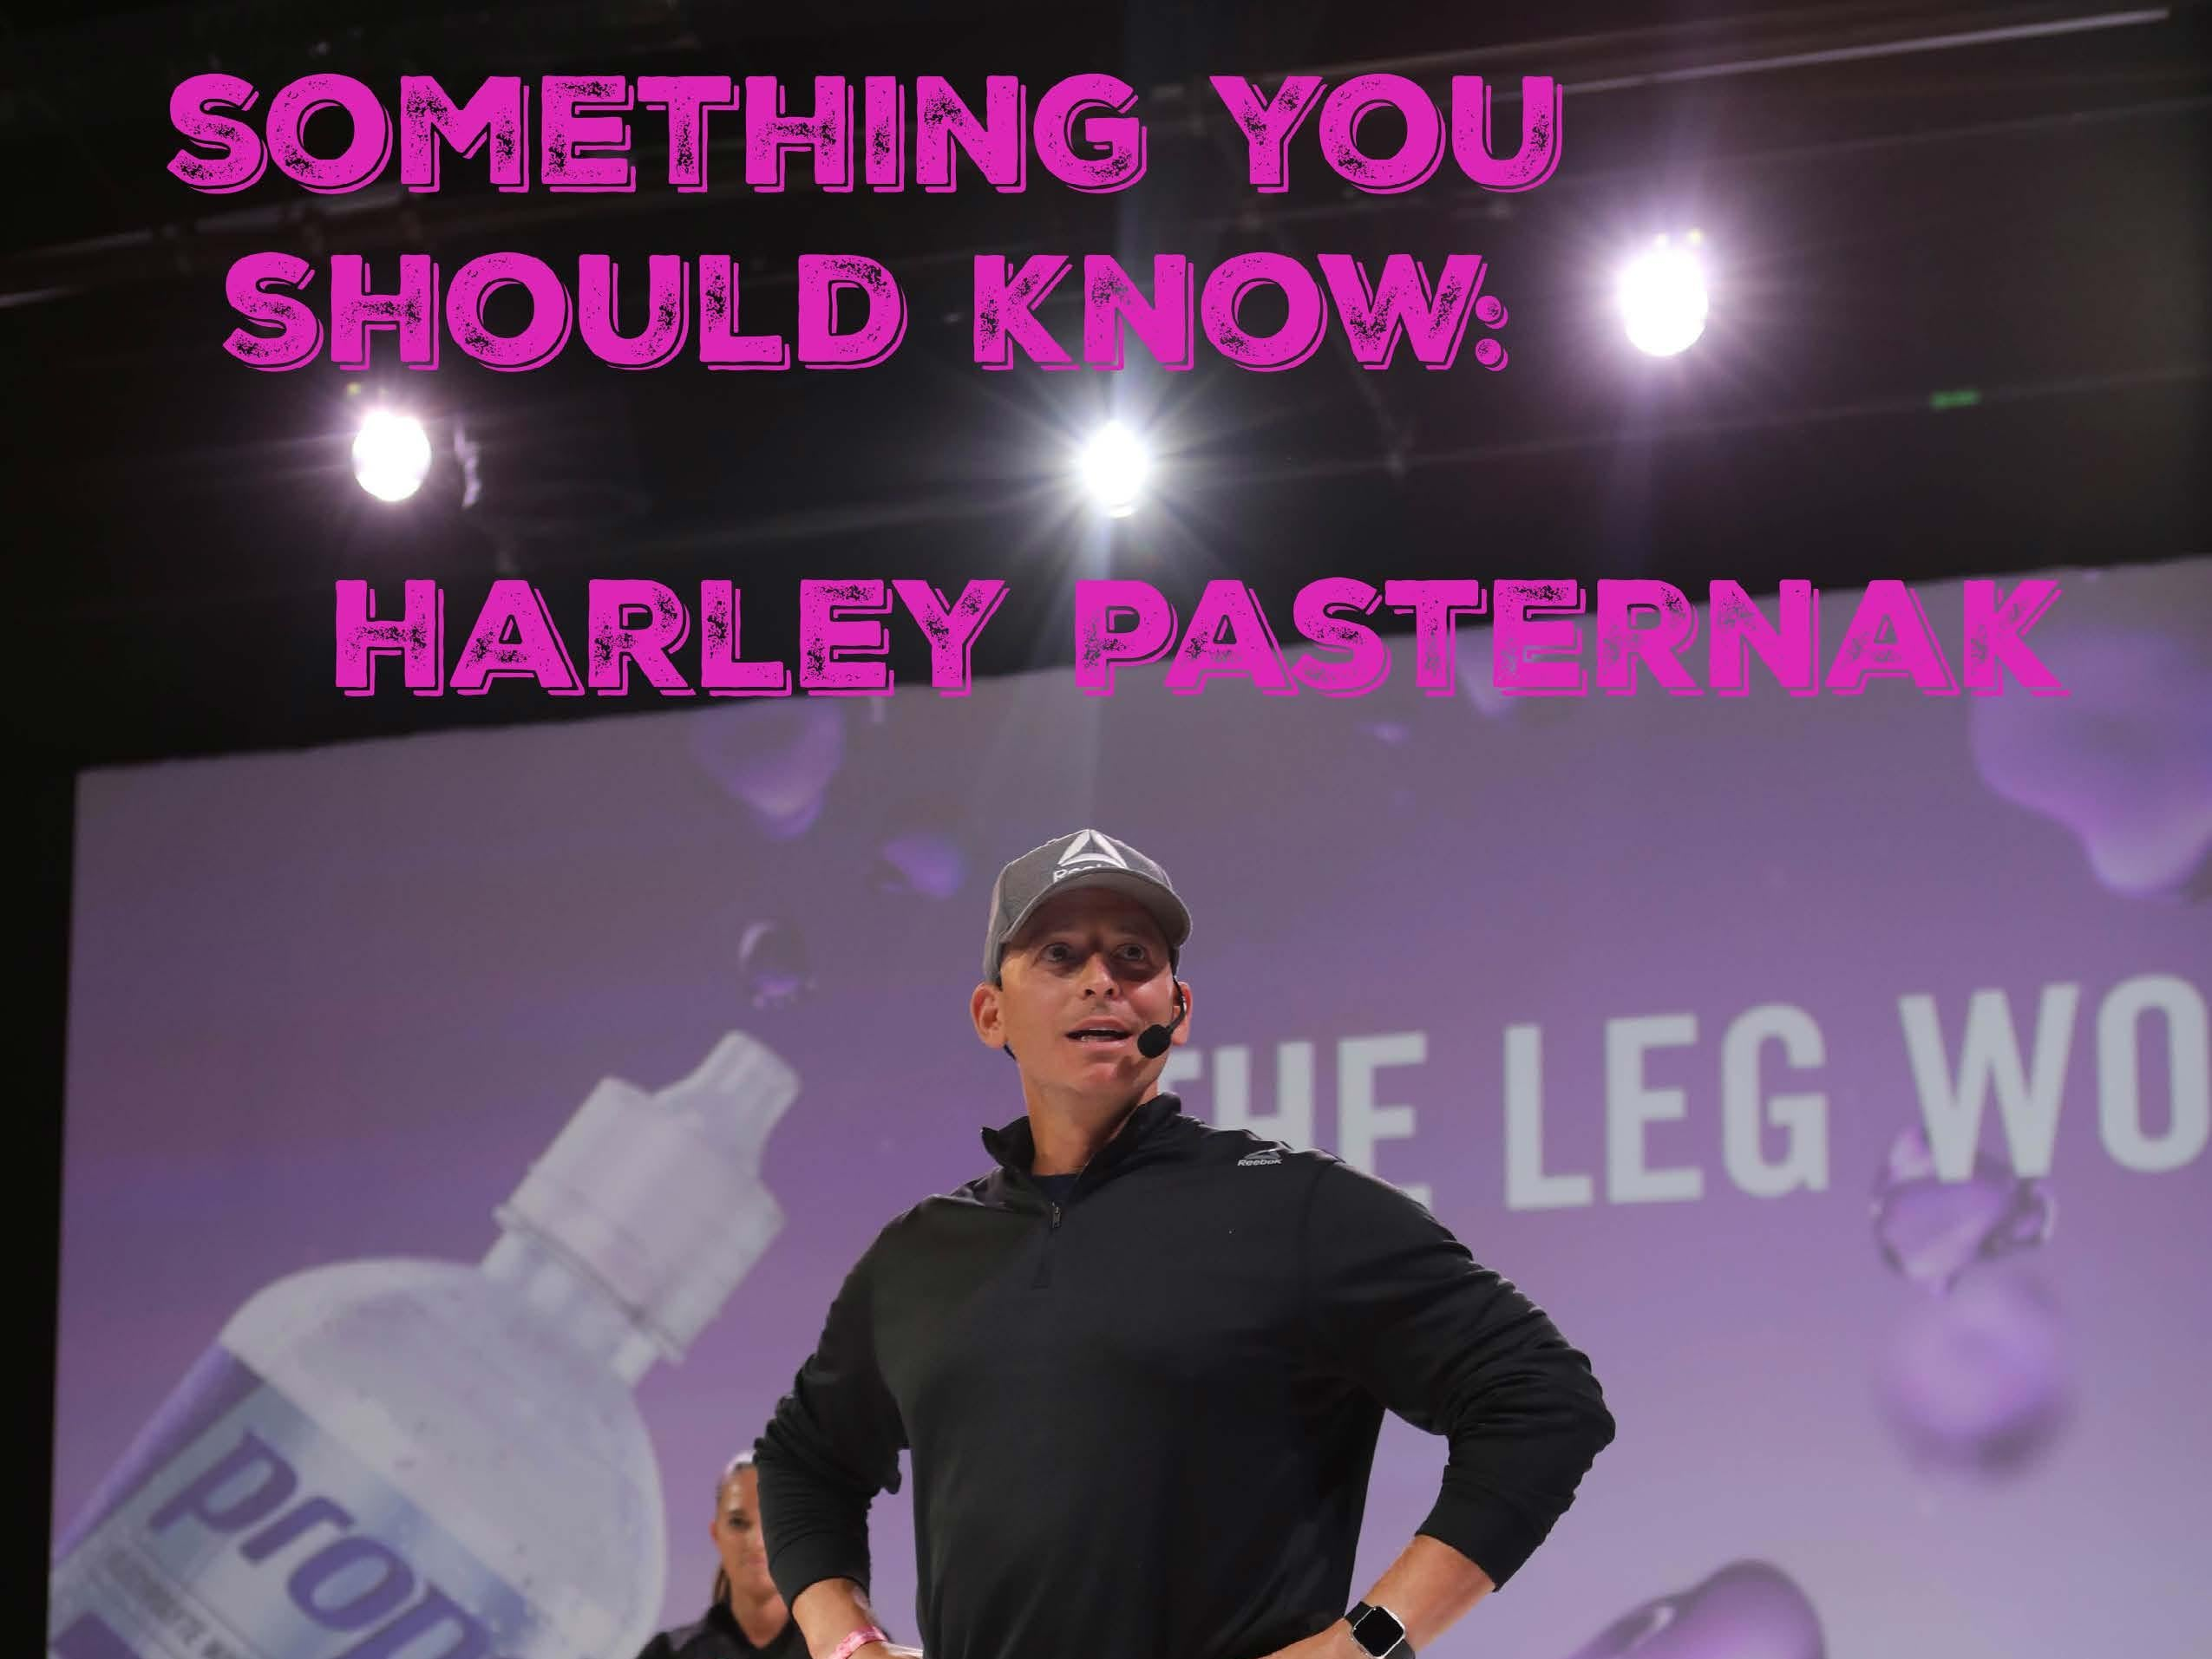 Page 74 of Athleisure Mag #55 Jul 2020 | Something You Should Know: Harley Pasternak